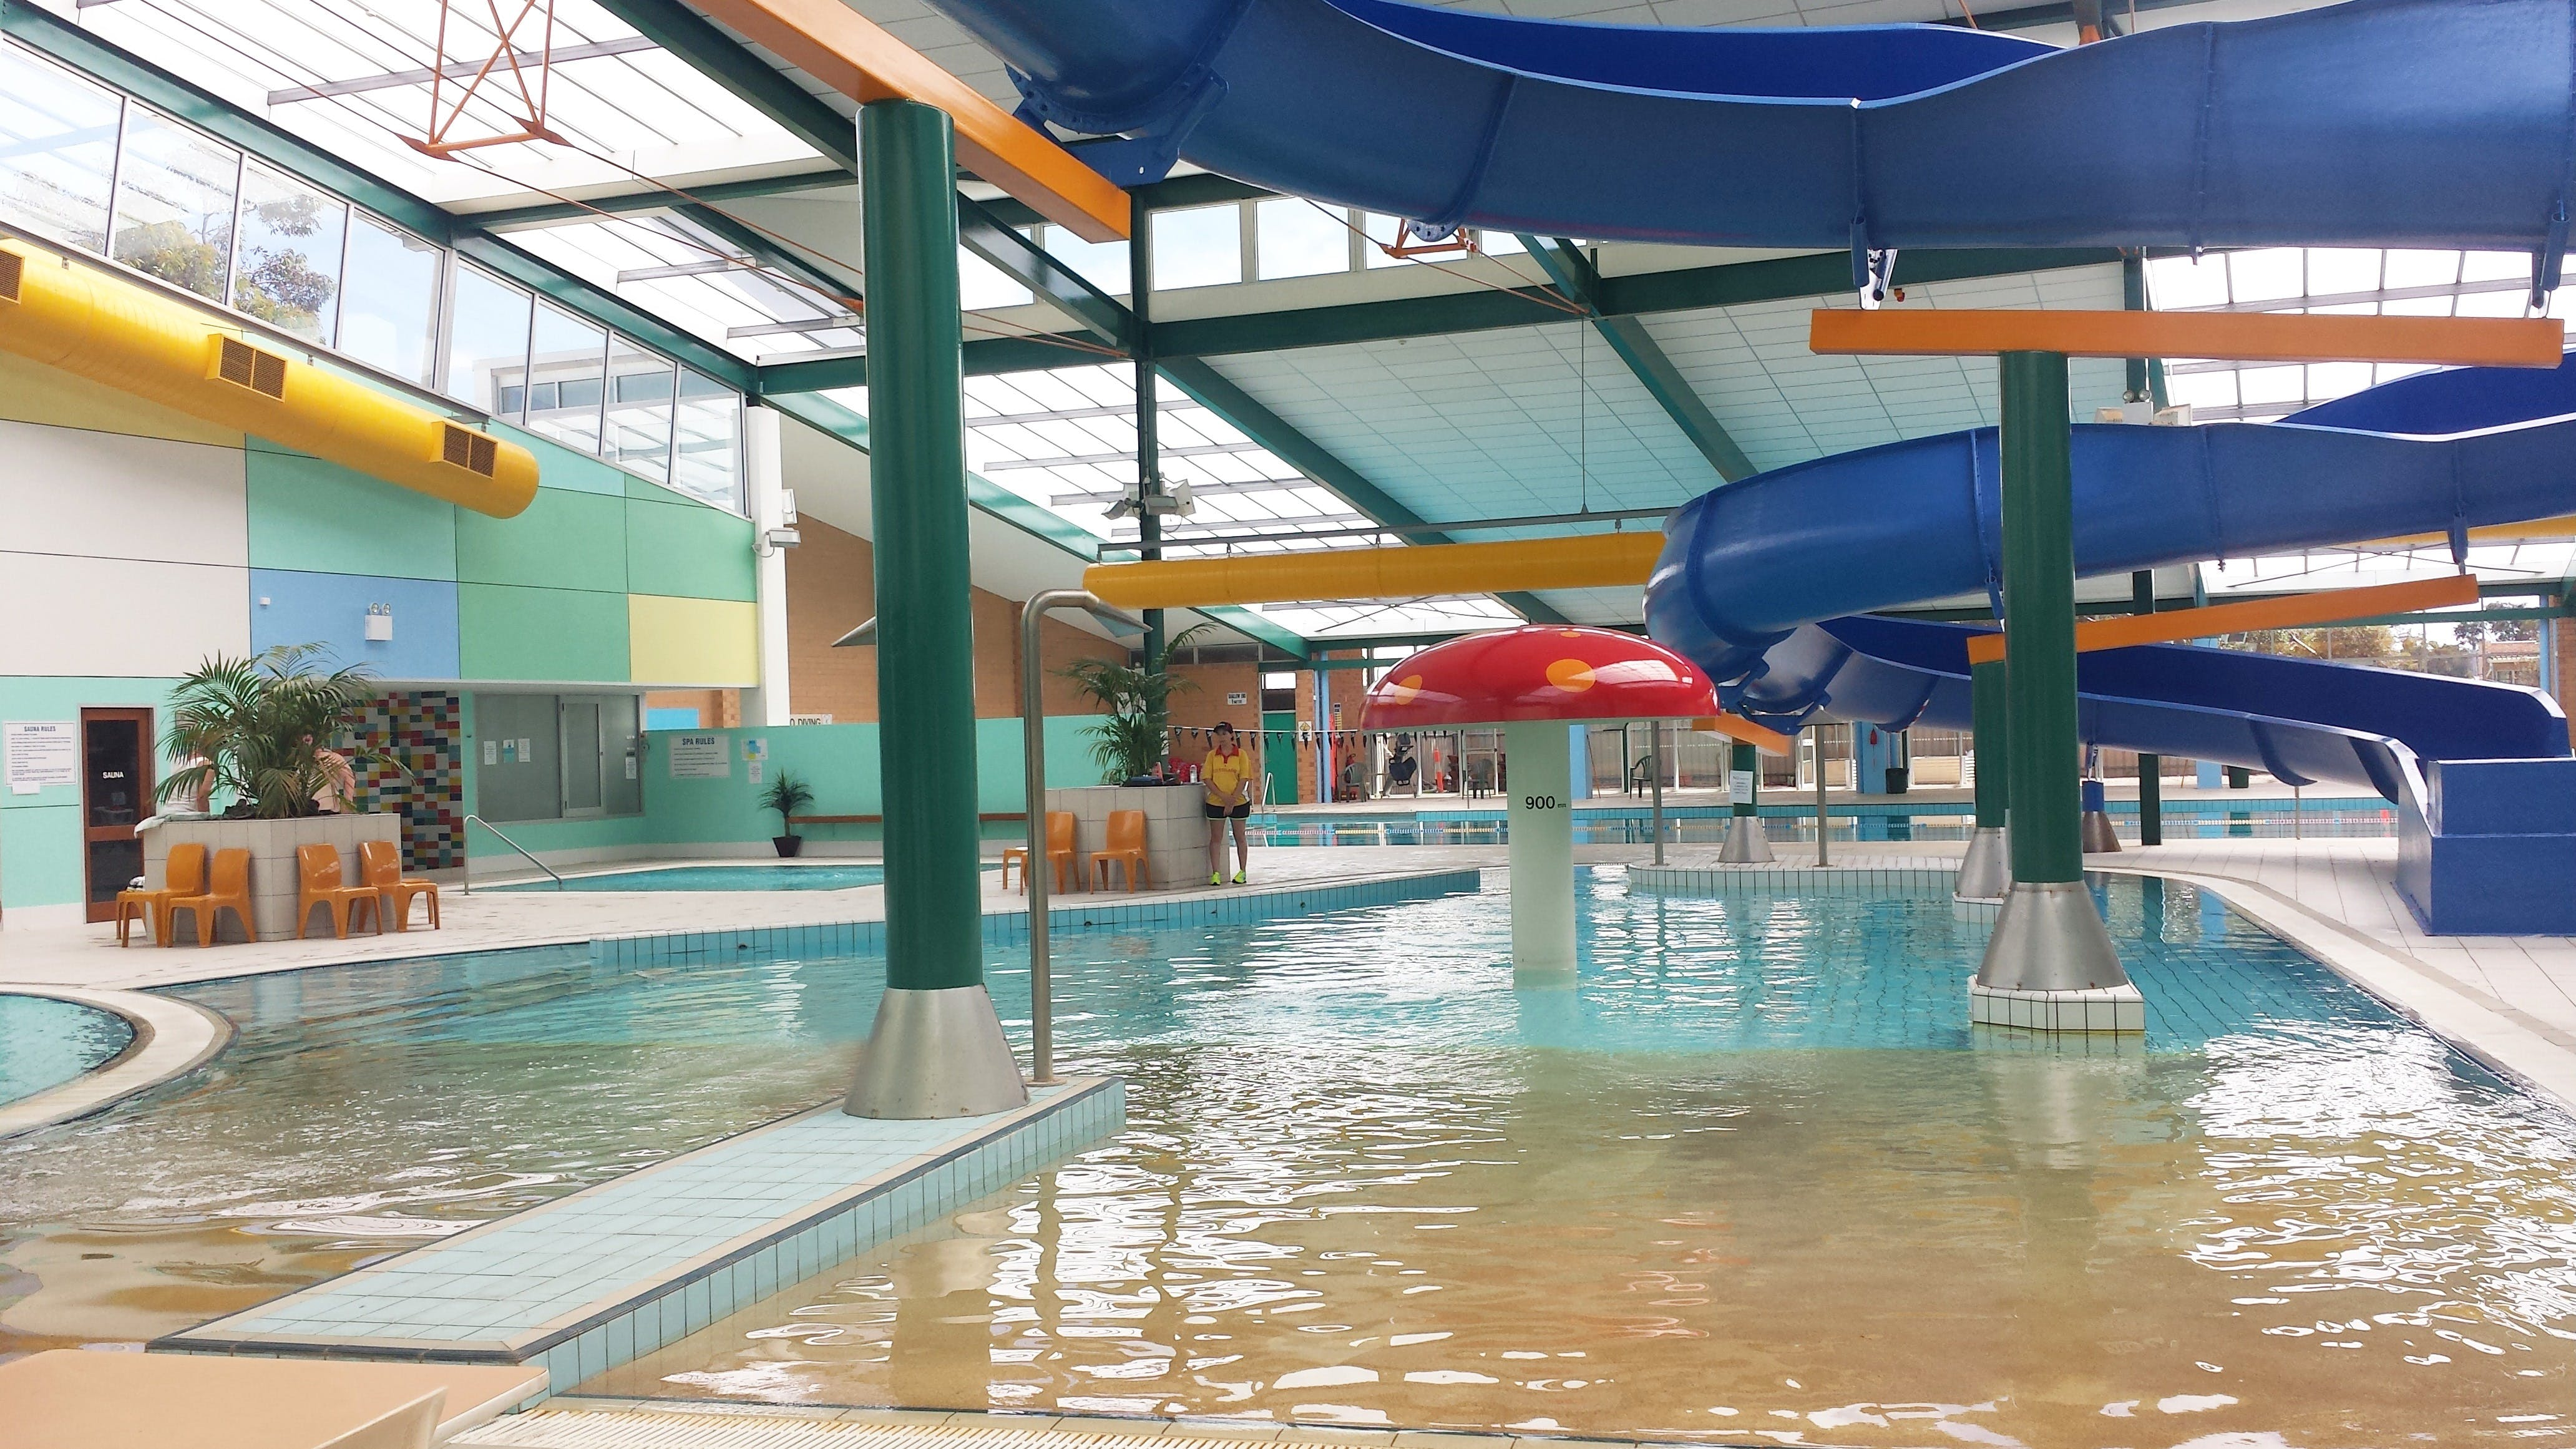 Whyalla Recreation Centre - Accommodation Sunshine Coast